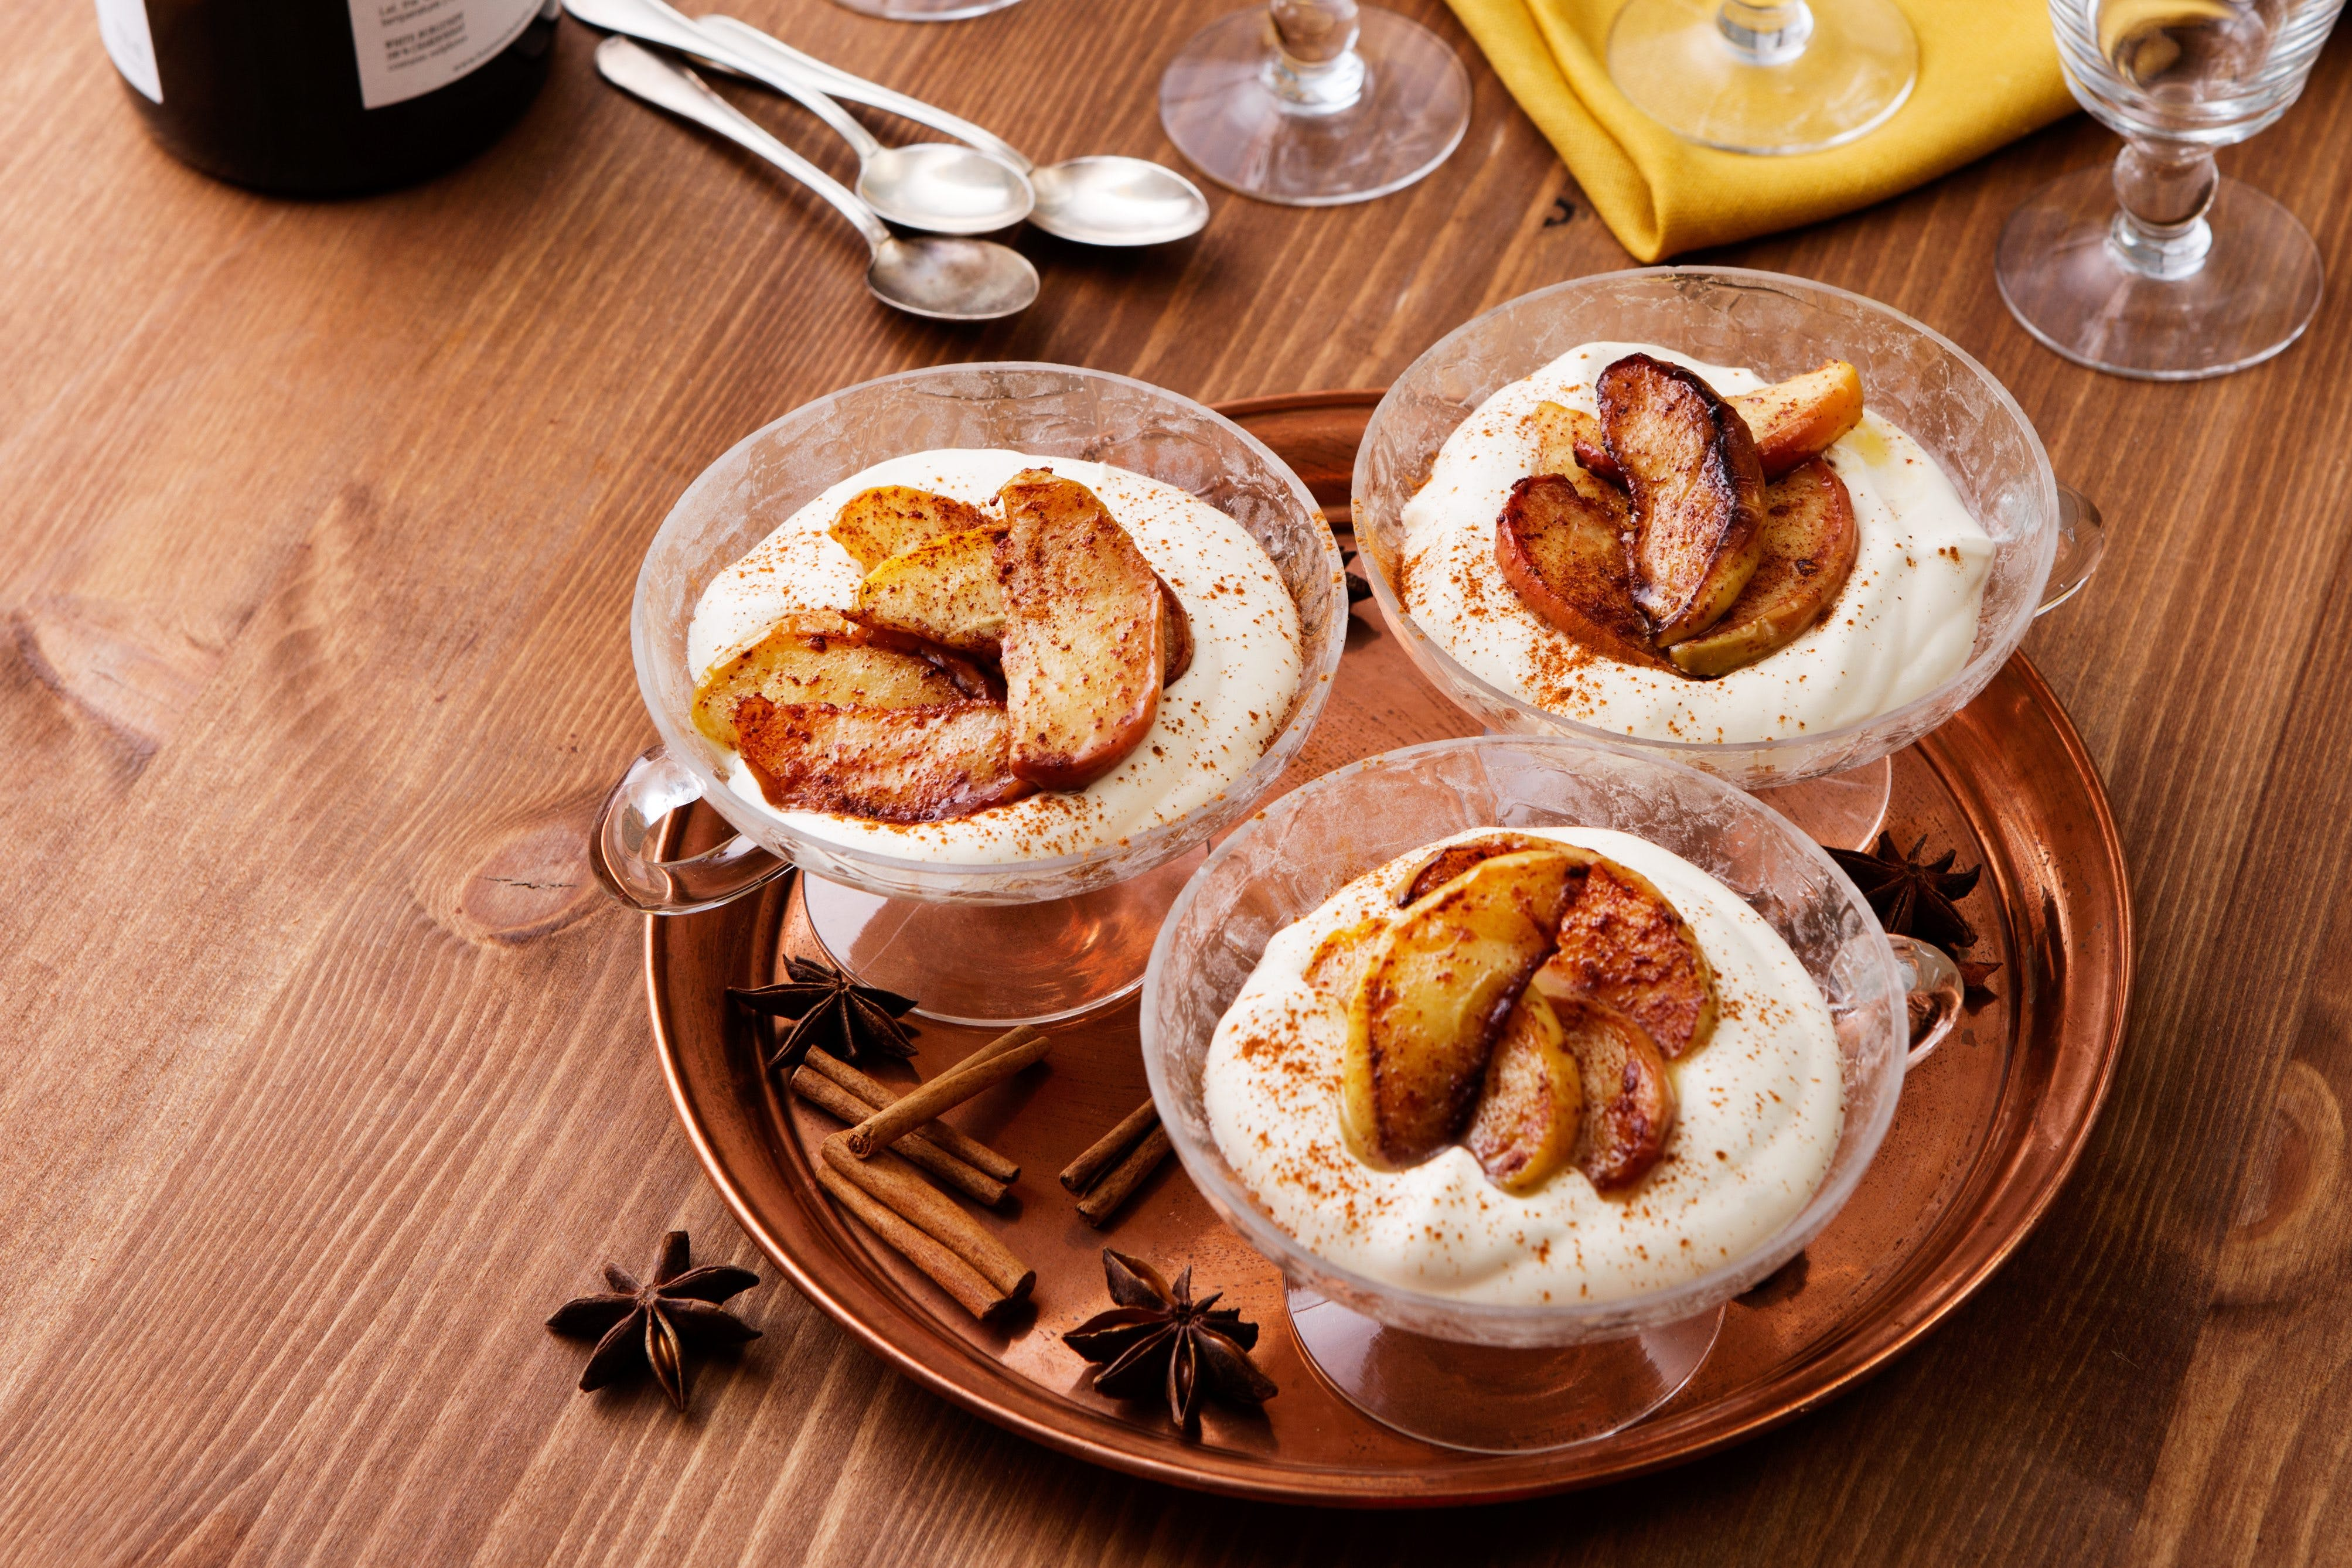 Low-carb cinnamon apples with vanilla sauce